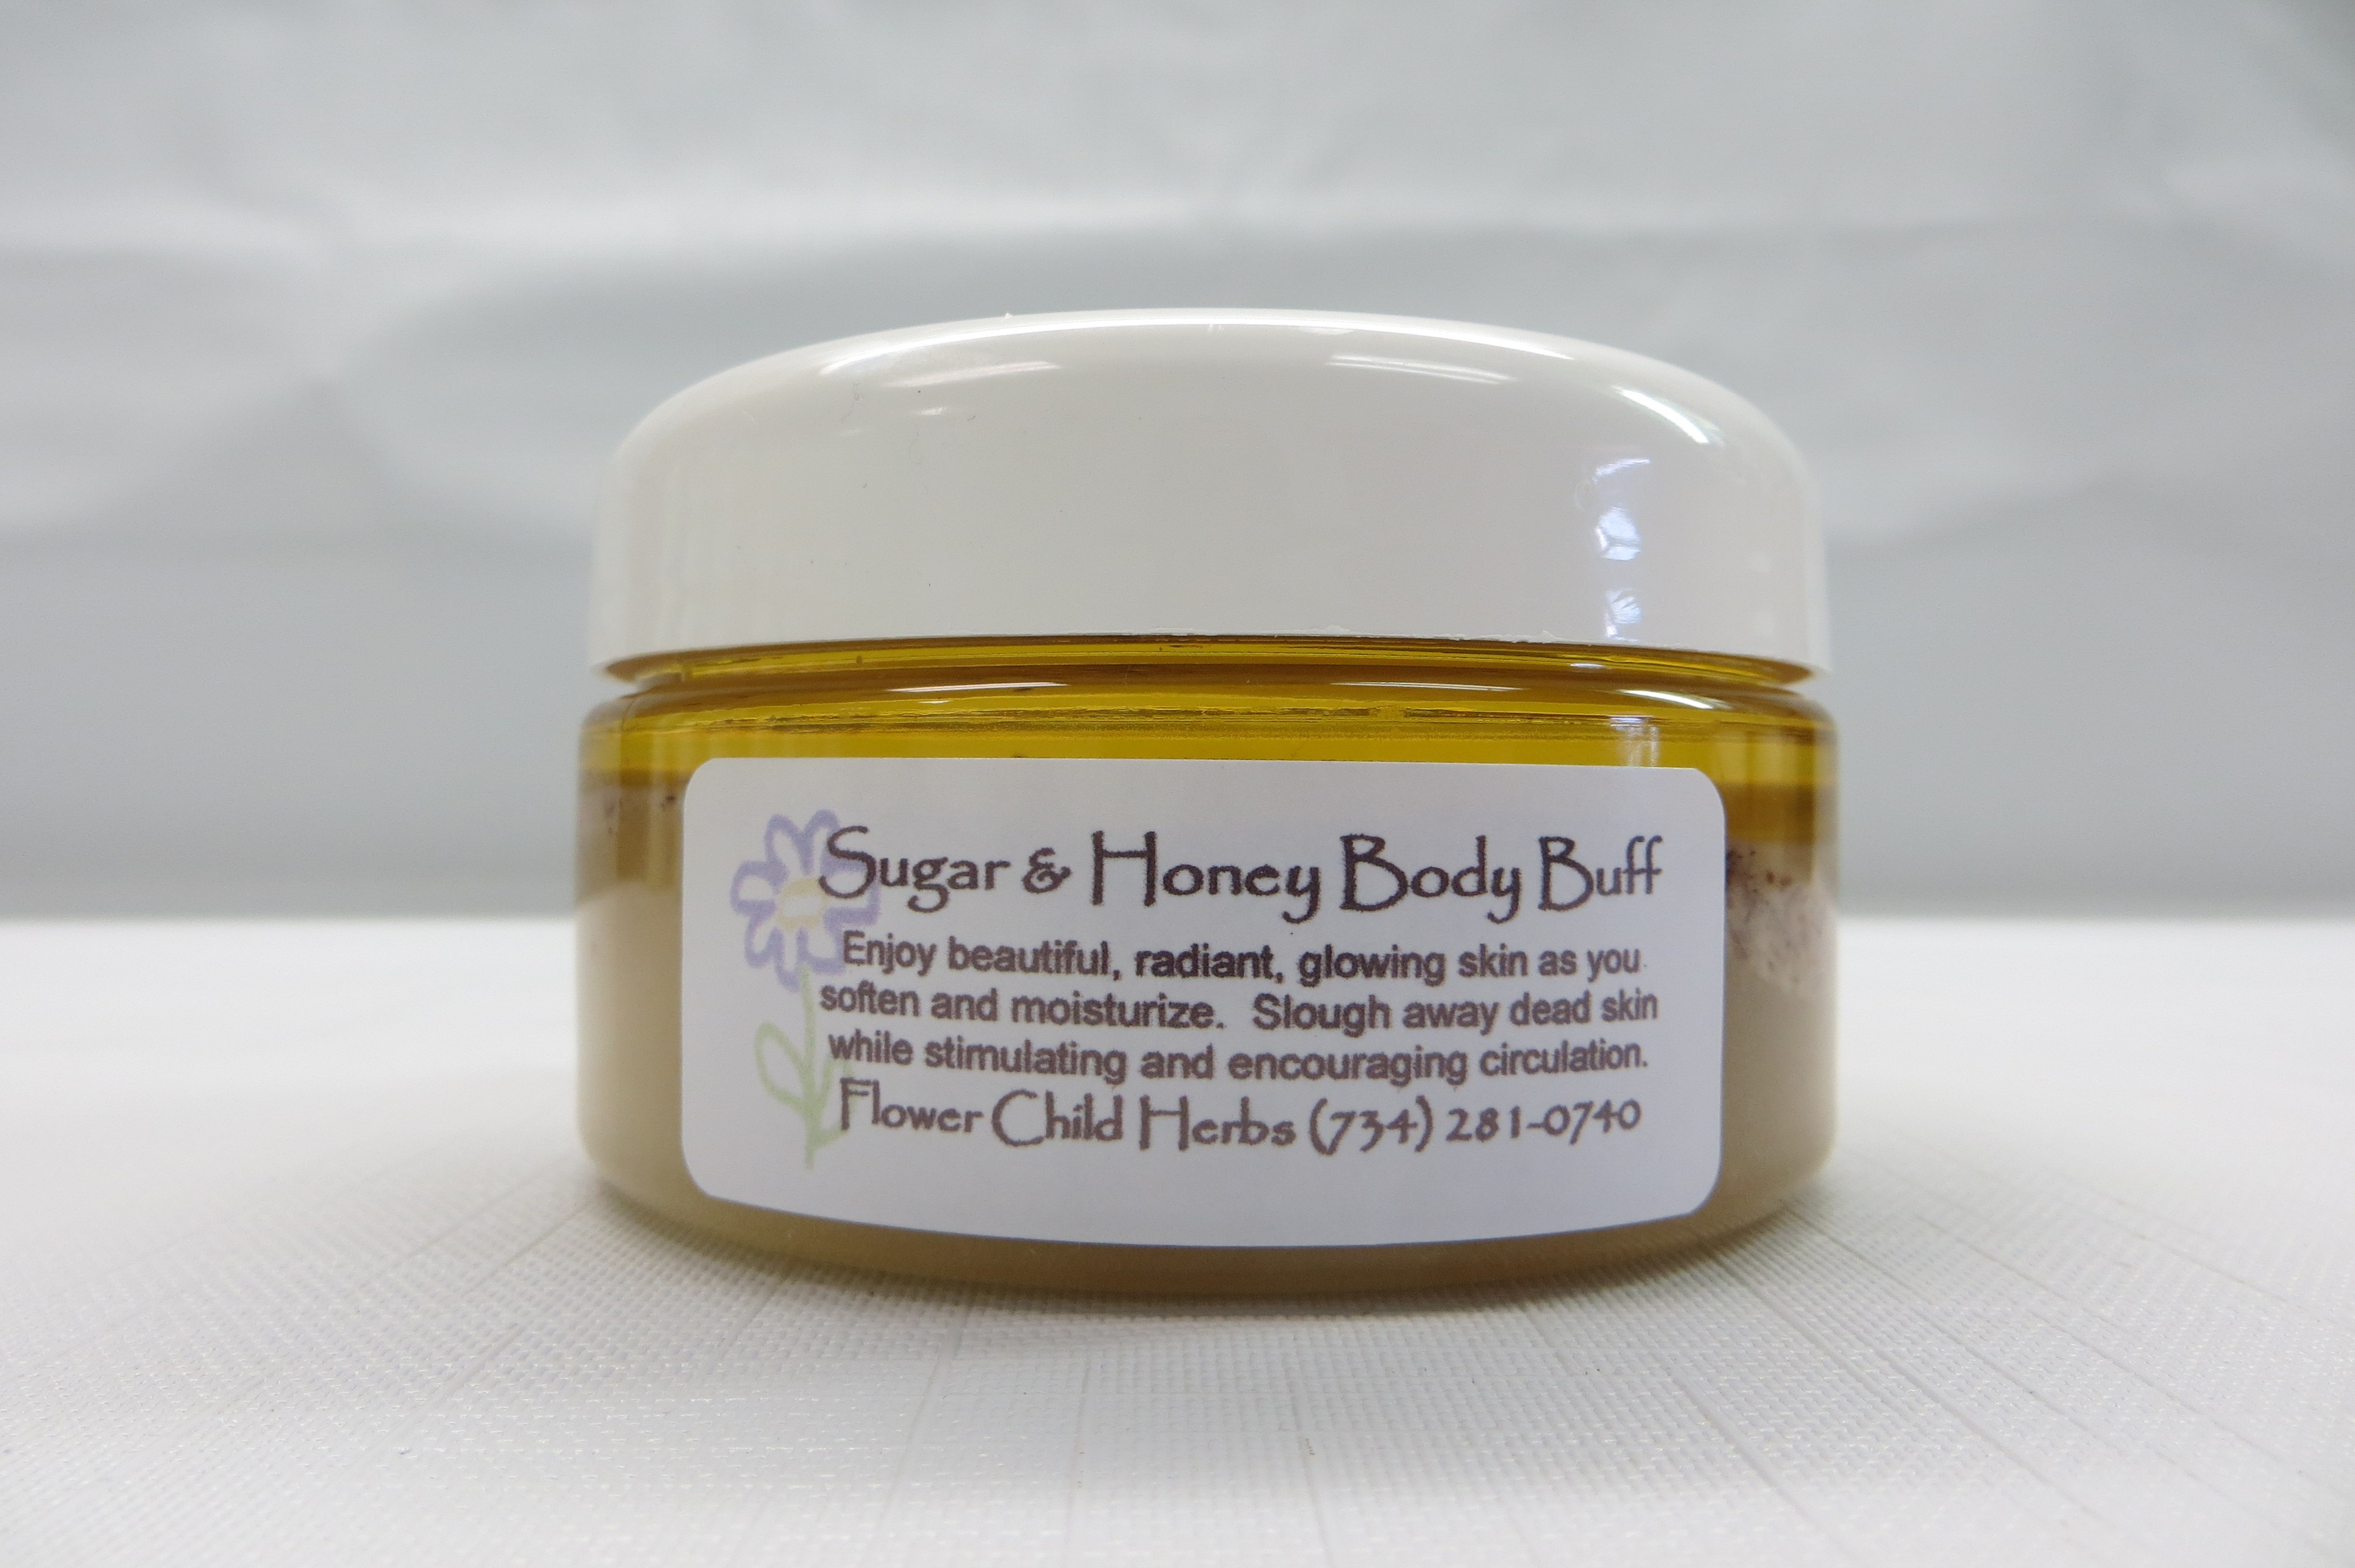 Almond Sugar and Honey Body Buff